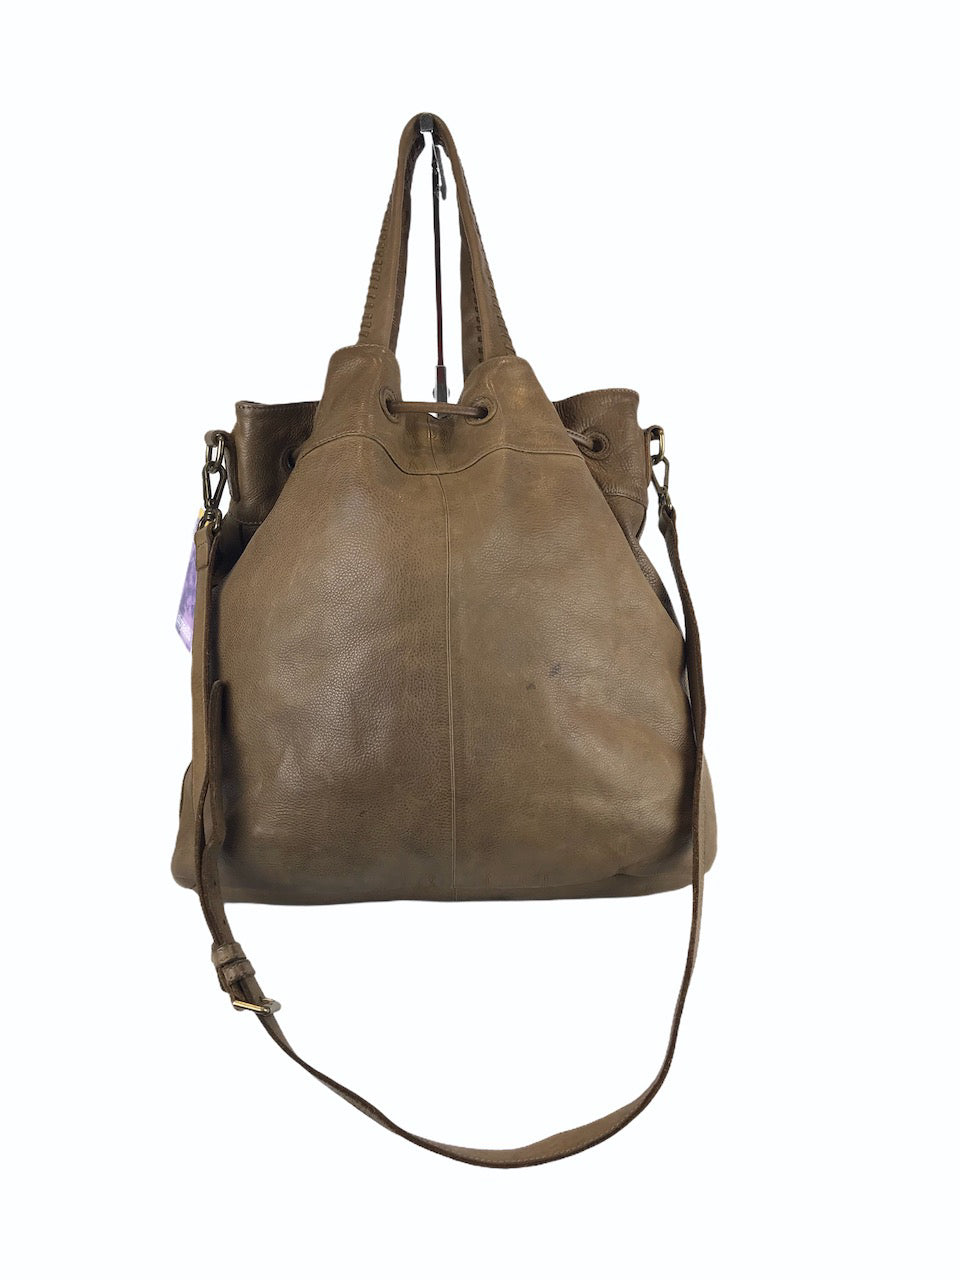 Massimo Dutti Brown Woven Leather Bucket Bag - As Seen On Instagram 09/09/2020